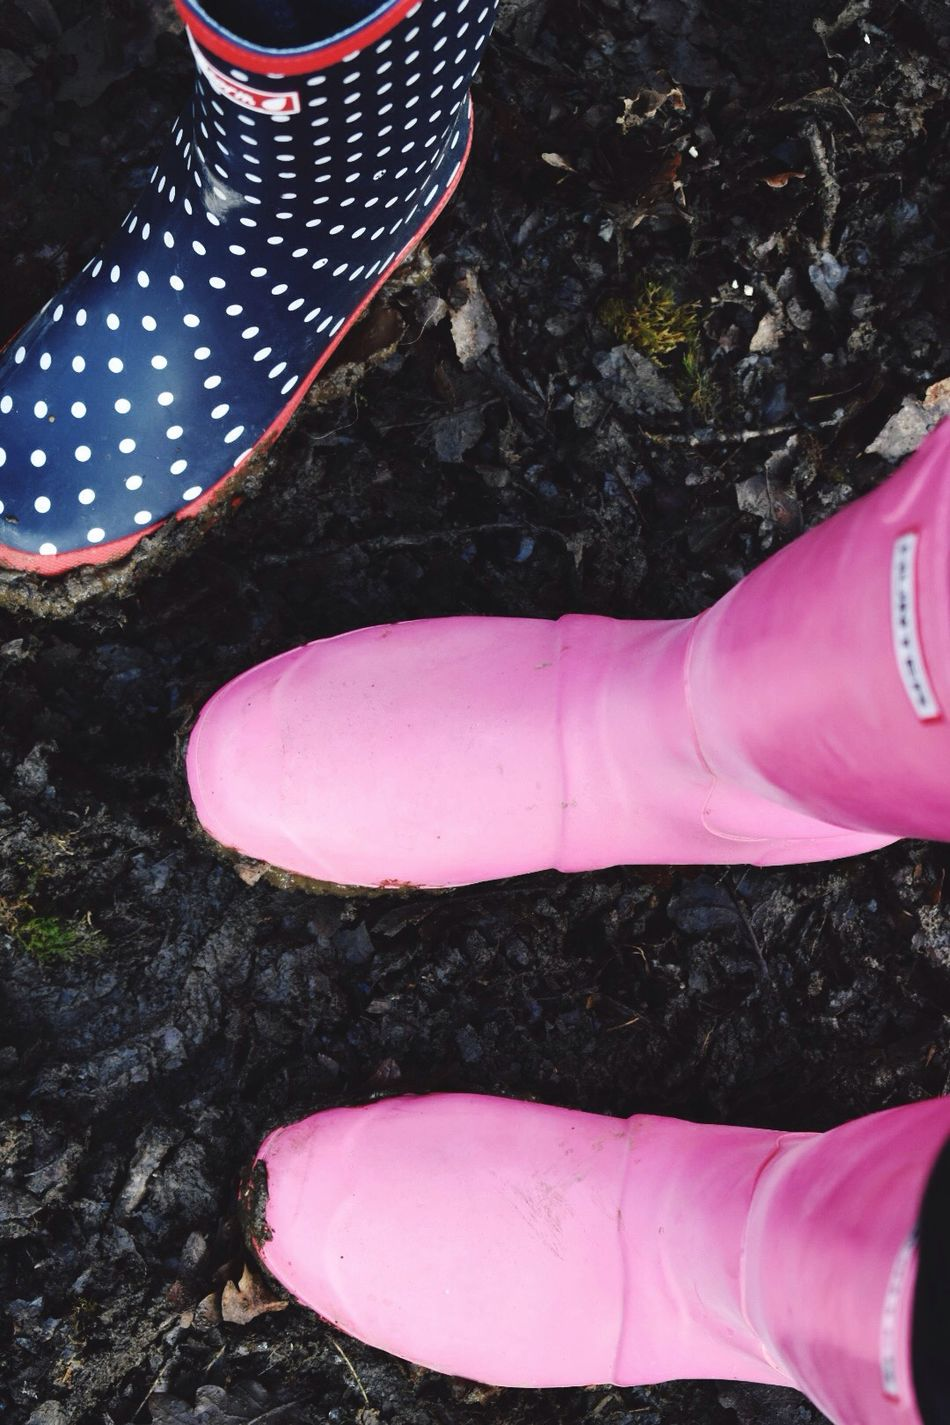 No filter.. it's nature! Mud Muddy Lookdown Wellies  Muddywalk Muddywellies Feet Nofilter Nature Natural Light Natural Condition